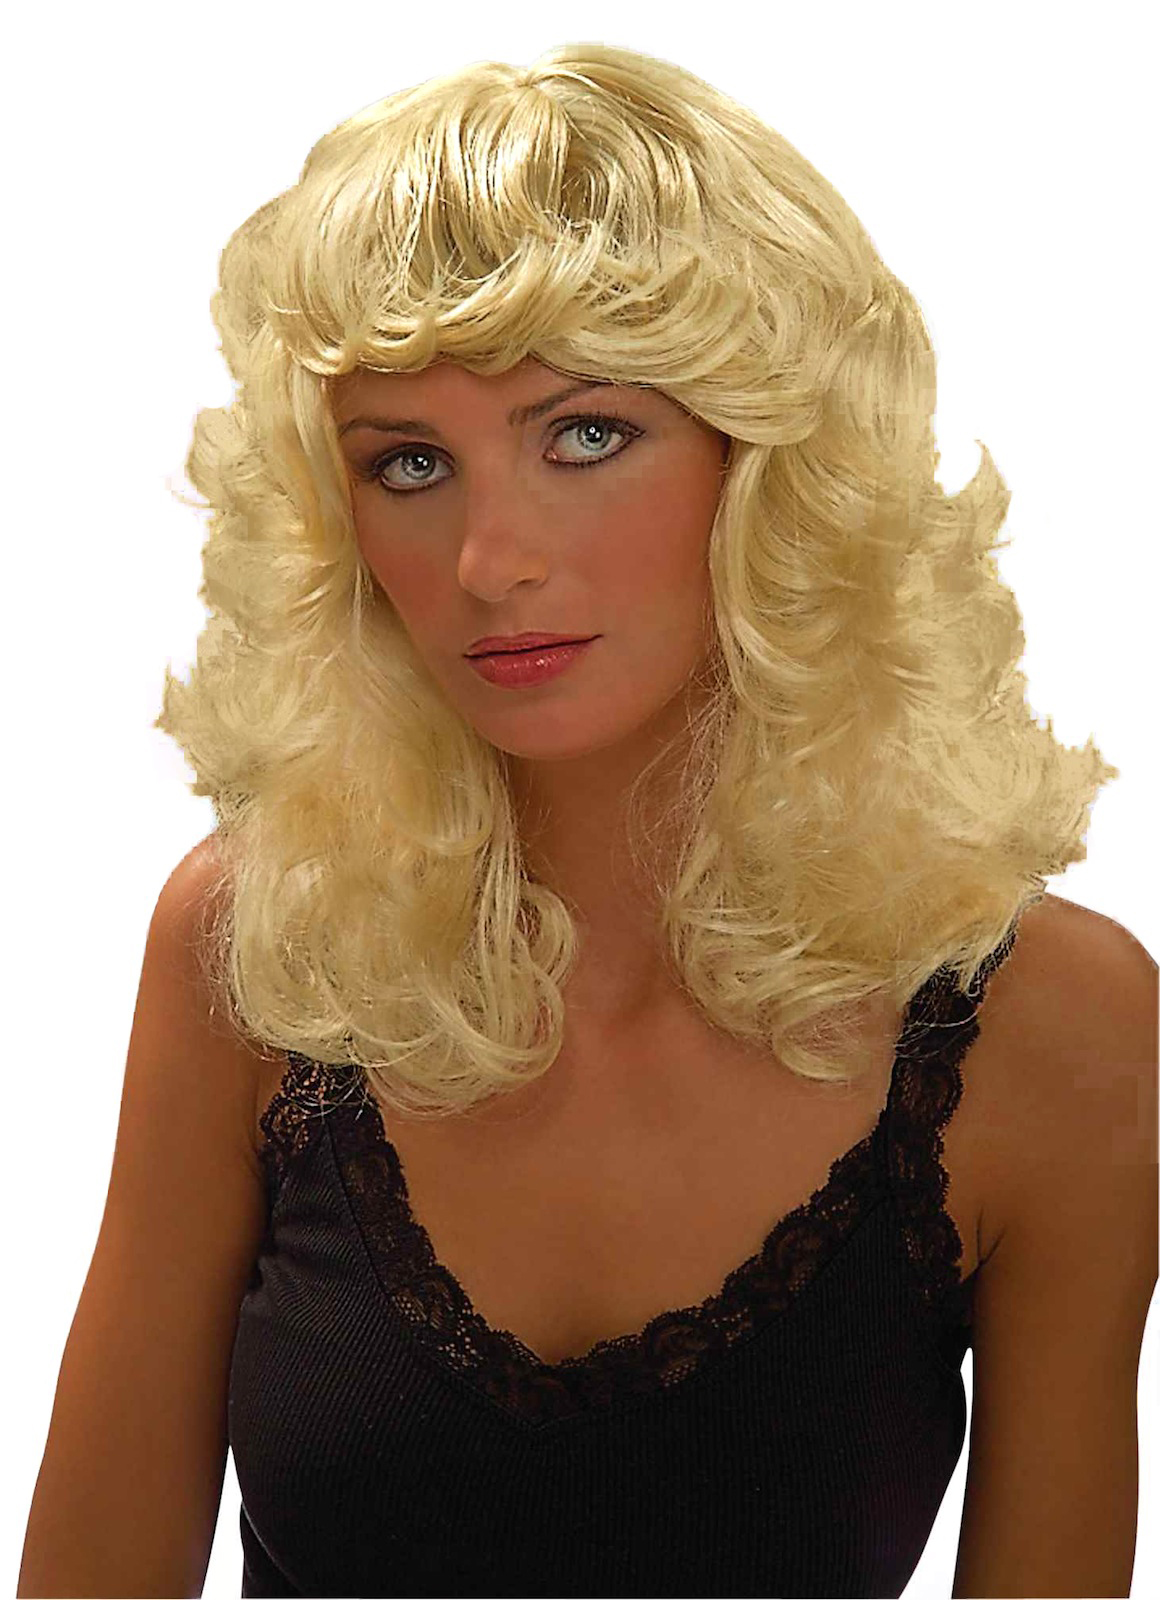 Dolly Blonde Beauty Sandy Grease 50s 60s Women Costume Wig